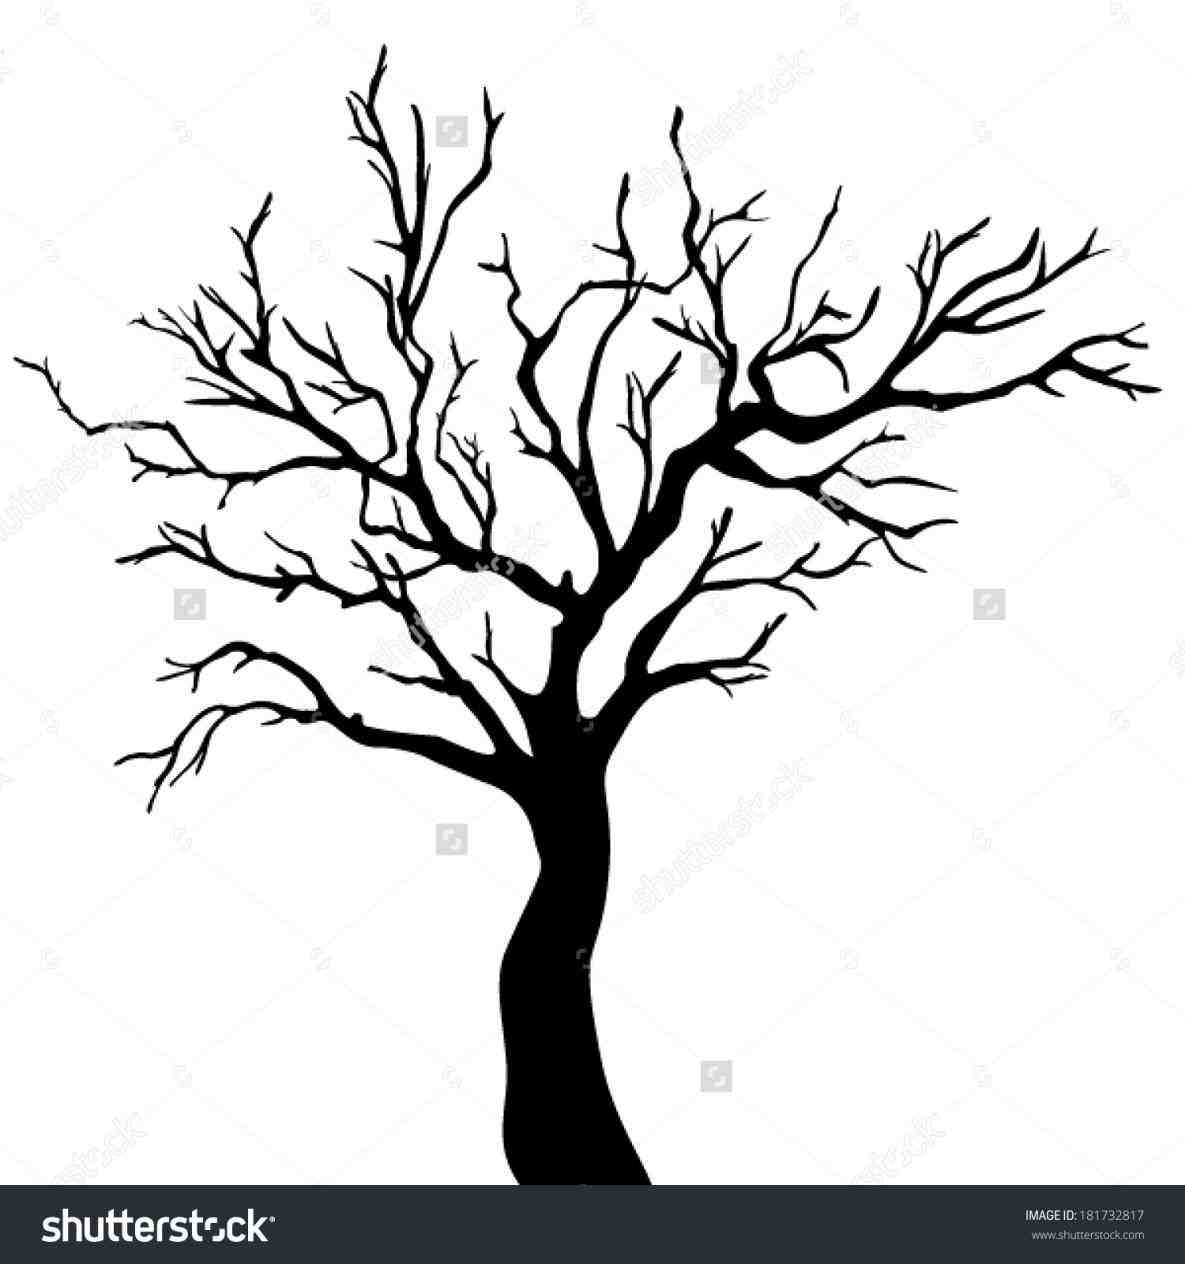 1185x1264 big dead tree drawing › ngorong.club Bare Trees Pinterest